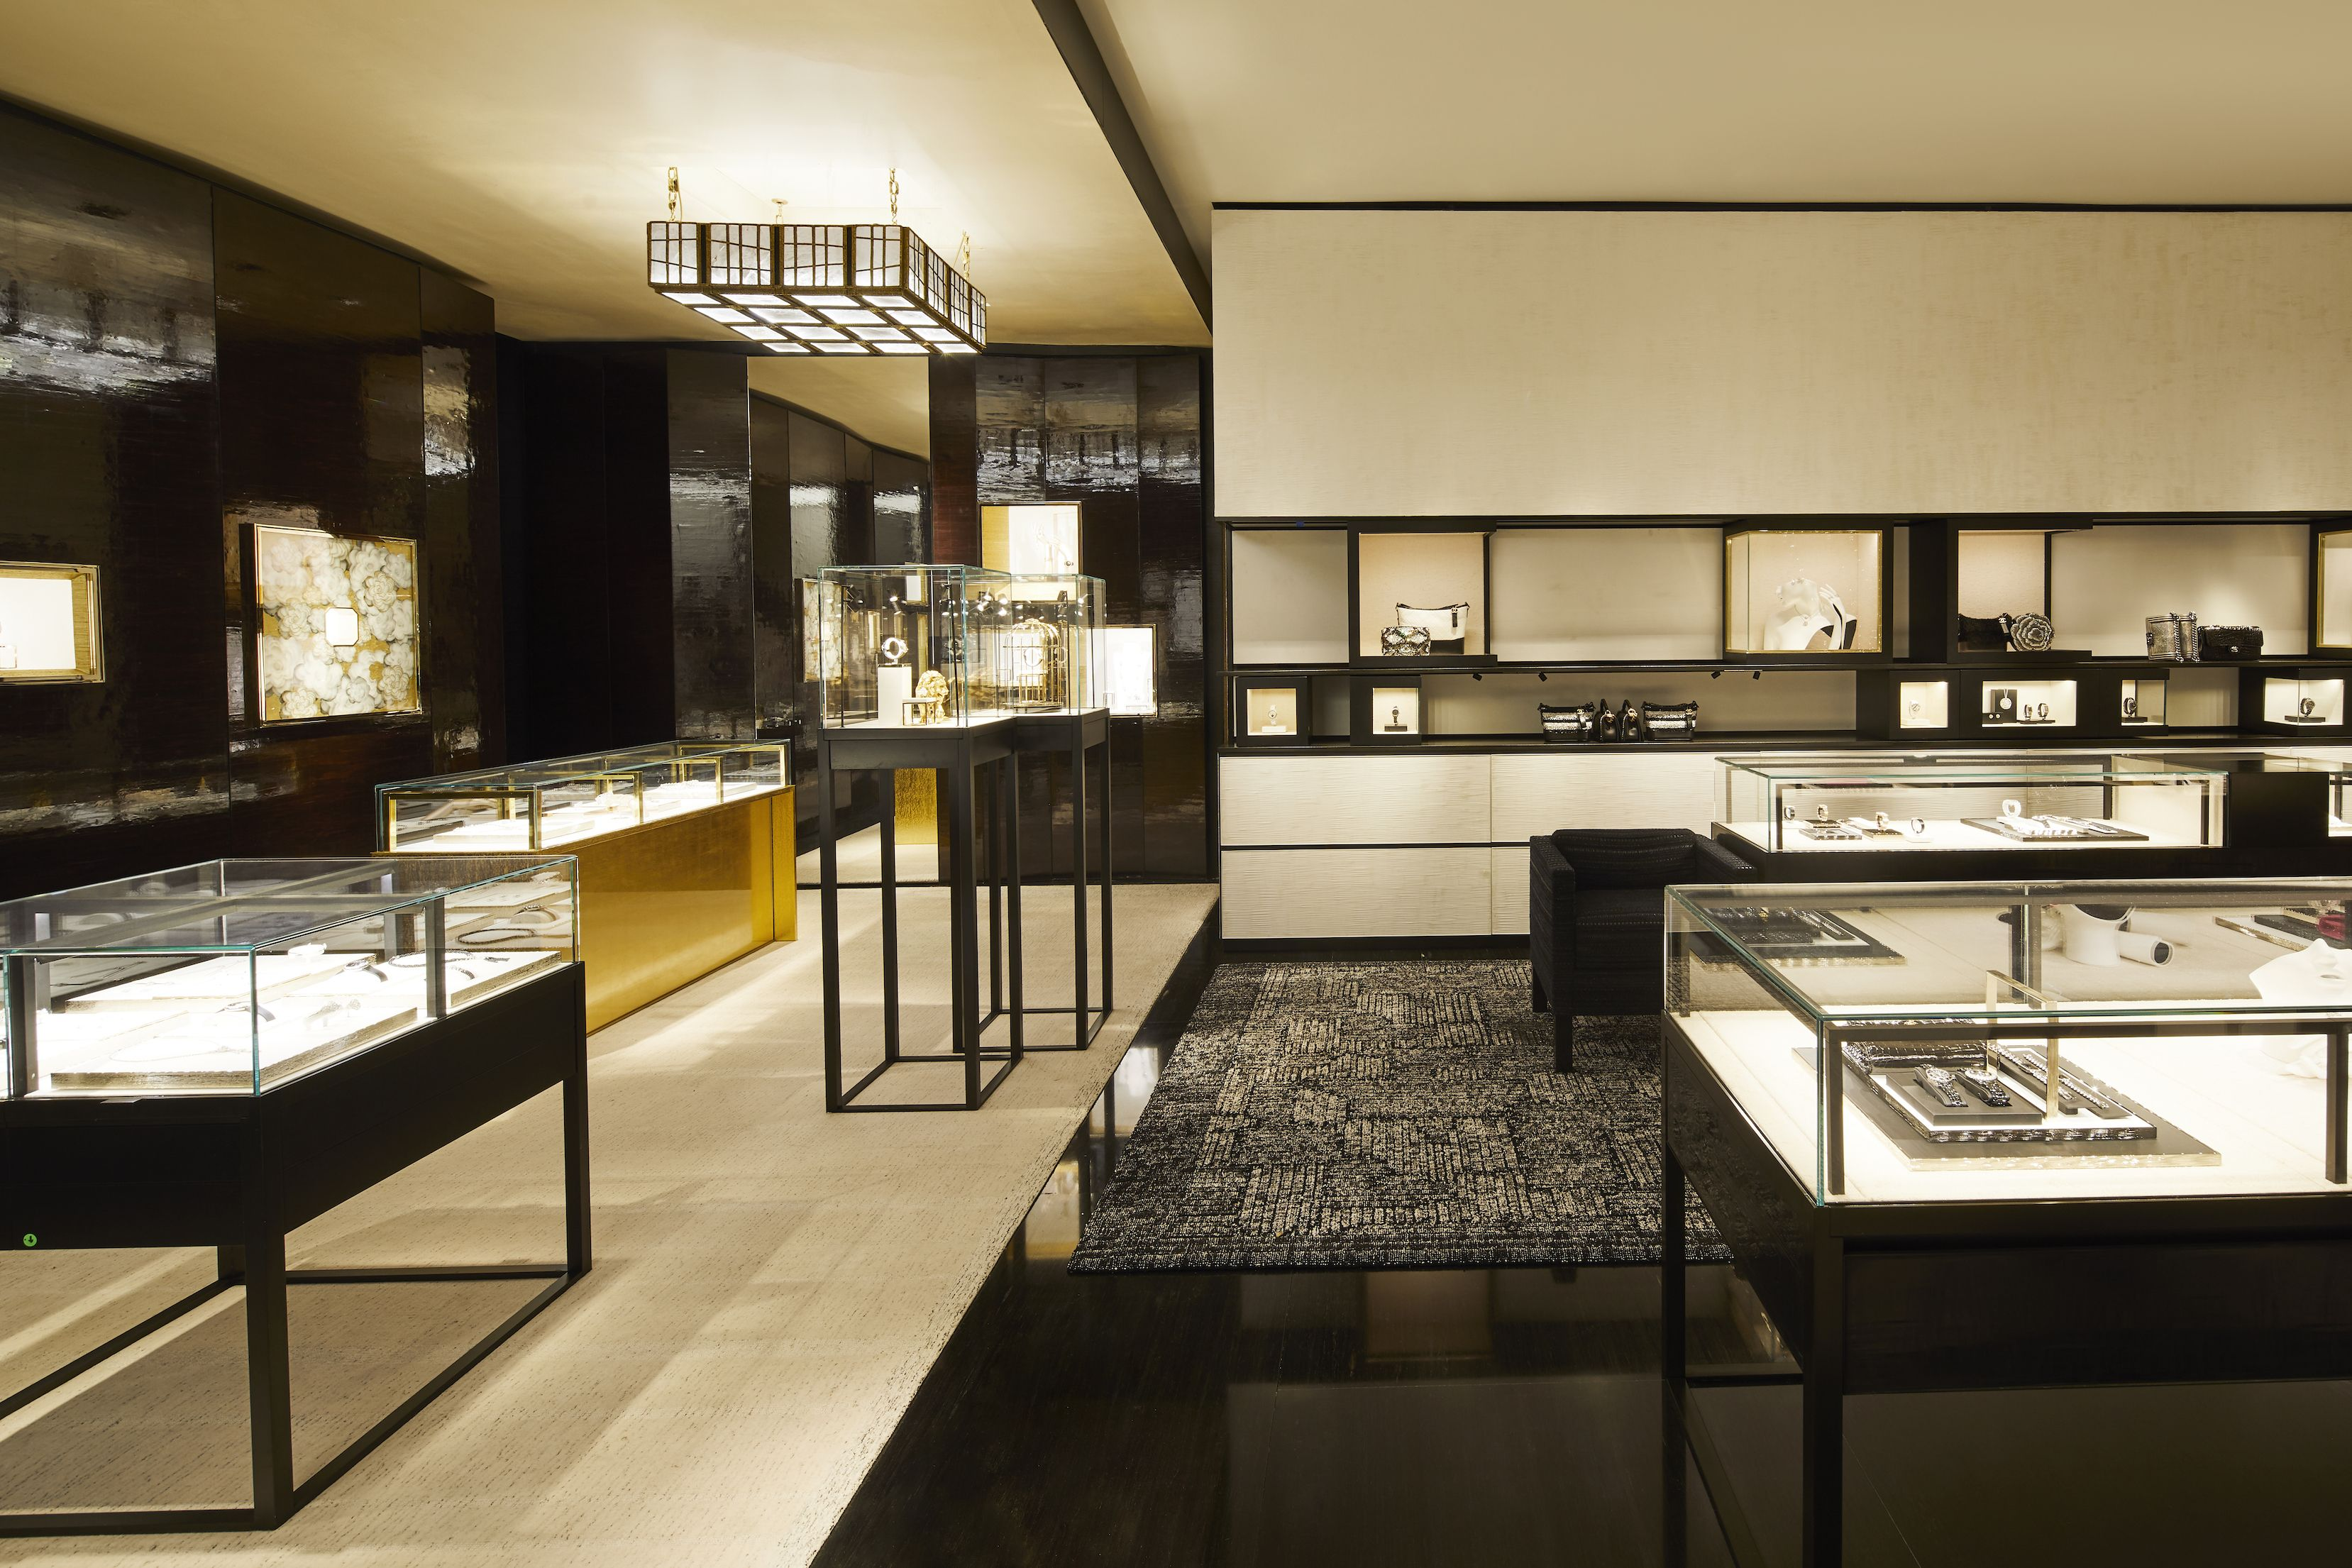 The fourth floor features a wide array of accessories, including ready-to-wear jewelry and time pieces.